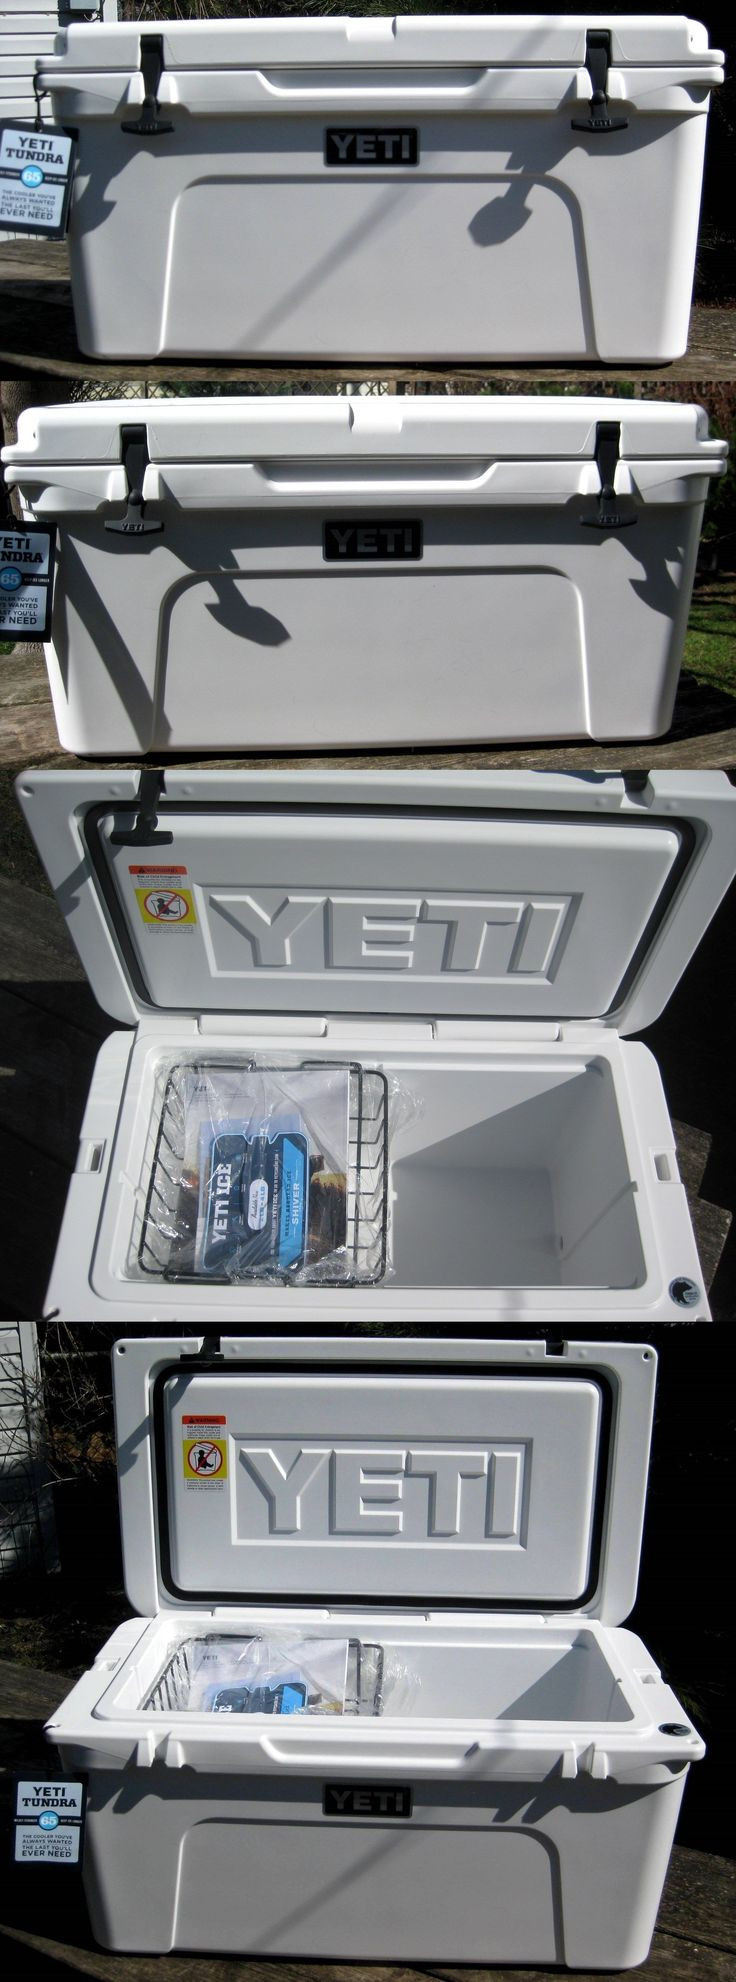 Camping Ice Boxes and Coolers 181382: *New* Yeti Tundra 65 Quart White Hard-Side Cooler - Yt65w -> BUY IT NOW ONLY: $330 on eBay!